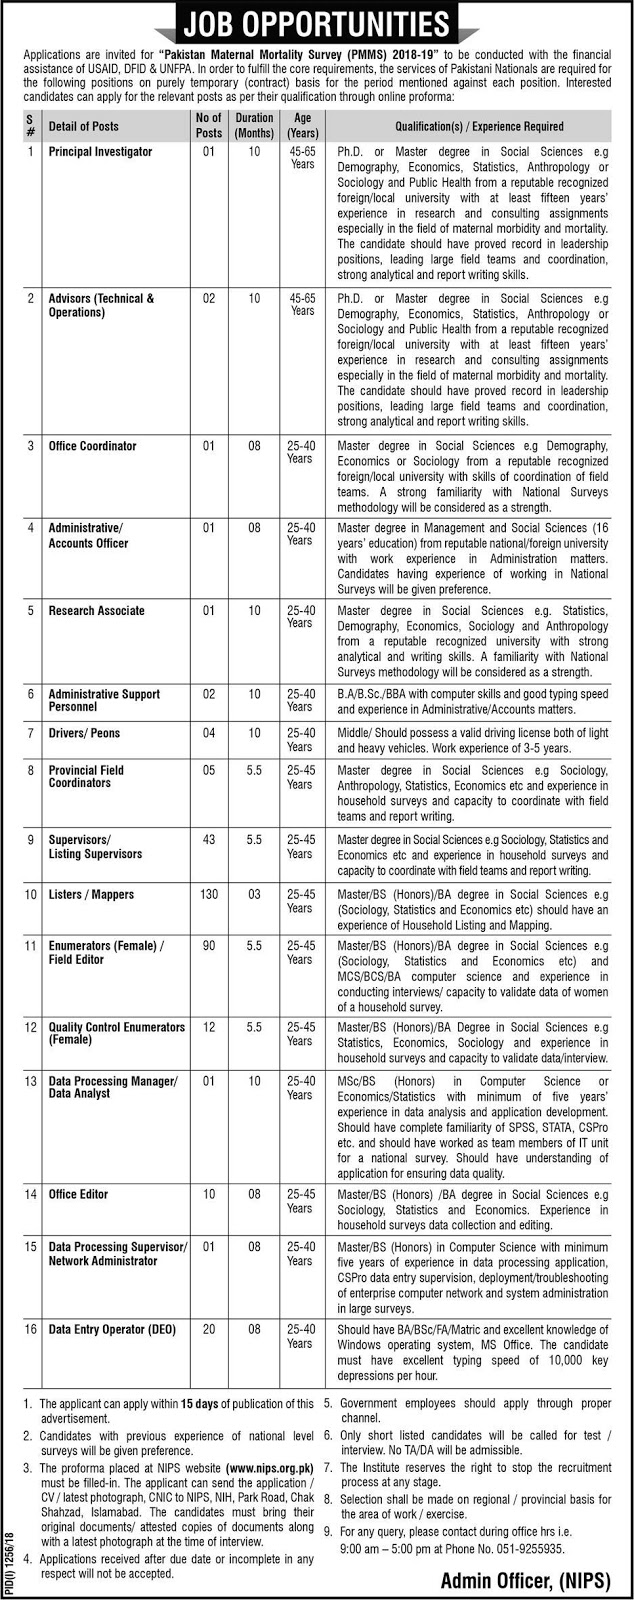 Latest Vacancies Announced in Pakistan Maternal Mortality Survey PMMS 15 September 2018